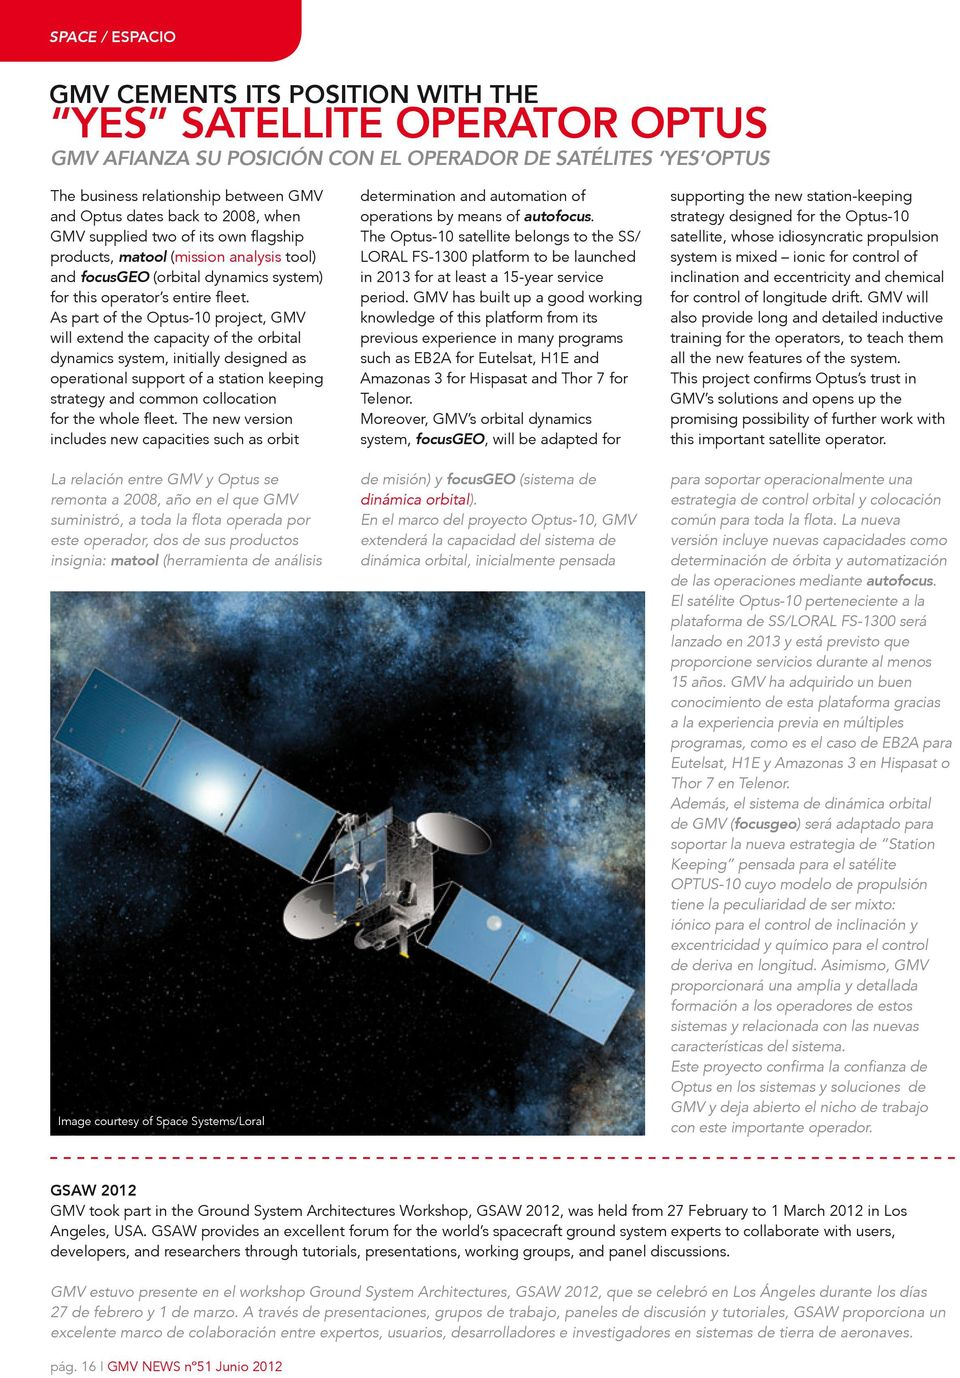 As part of the Optus-10 project, GMV will extend the capacity of the orbital dynamics system, initially designed as operational support of a station keeping strategy and common collocation for the